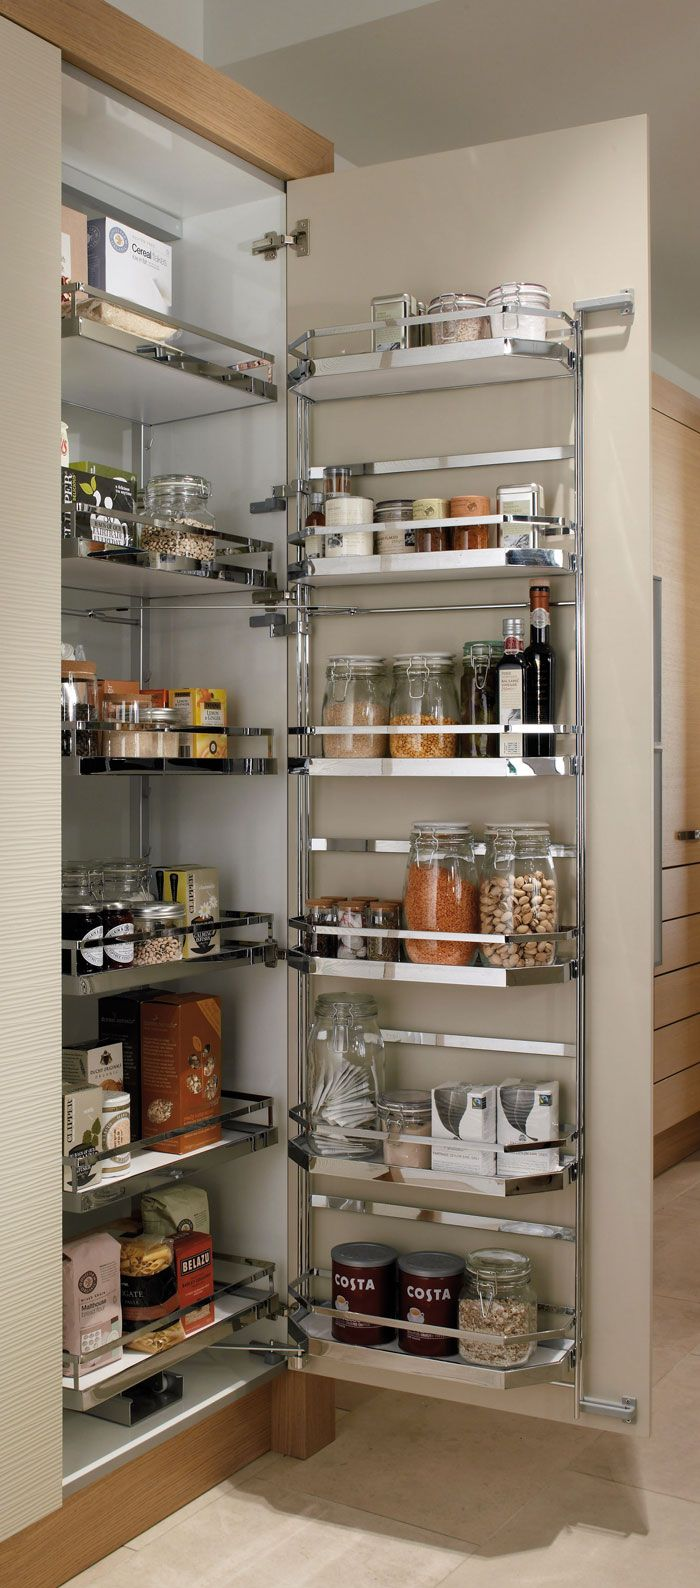 Kitchen Cabinets Storage best 20+ kitchen cupboard storage ideas on pinterest | cupboard